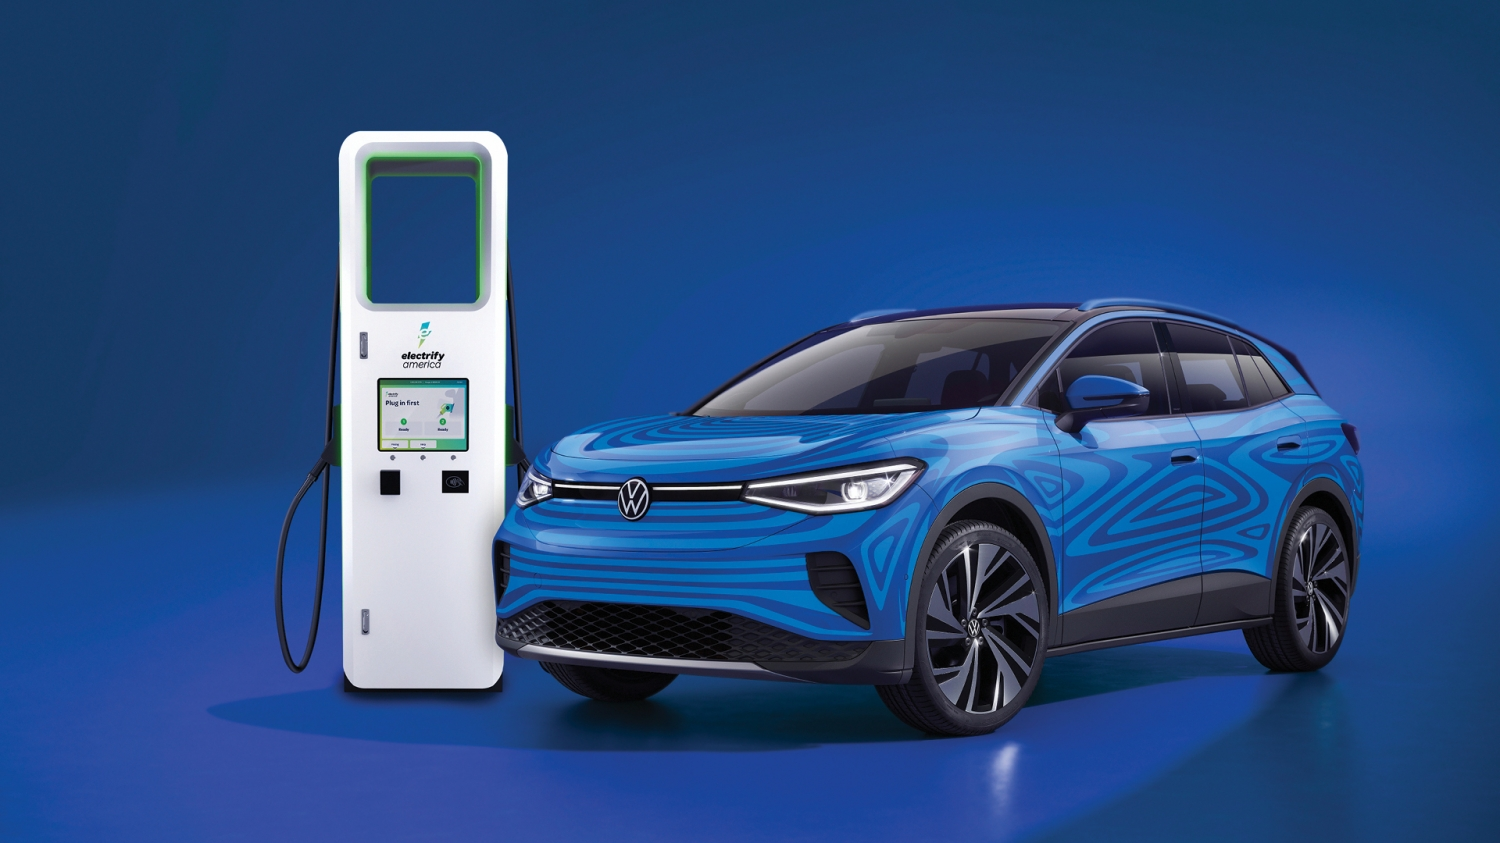 Electrify America Offers Volkswagen ID.4 Owners 3 Years of Free EV Charging